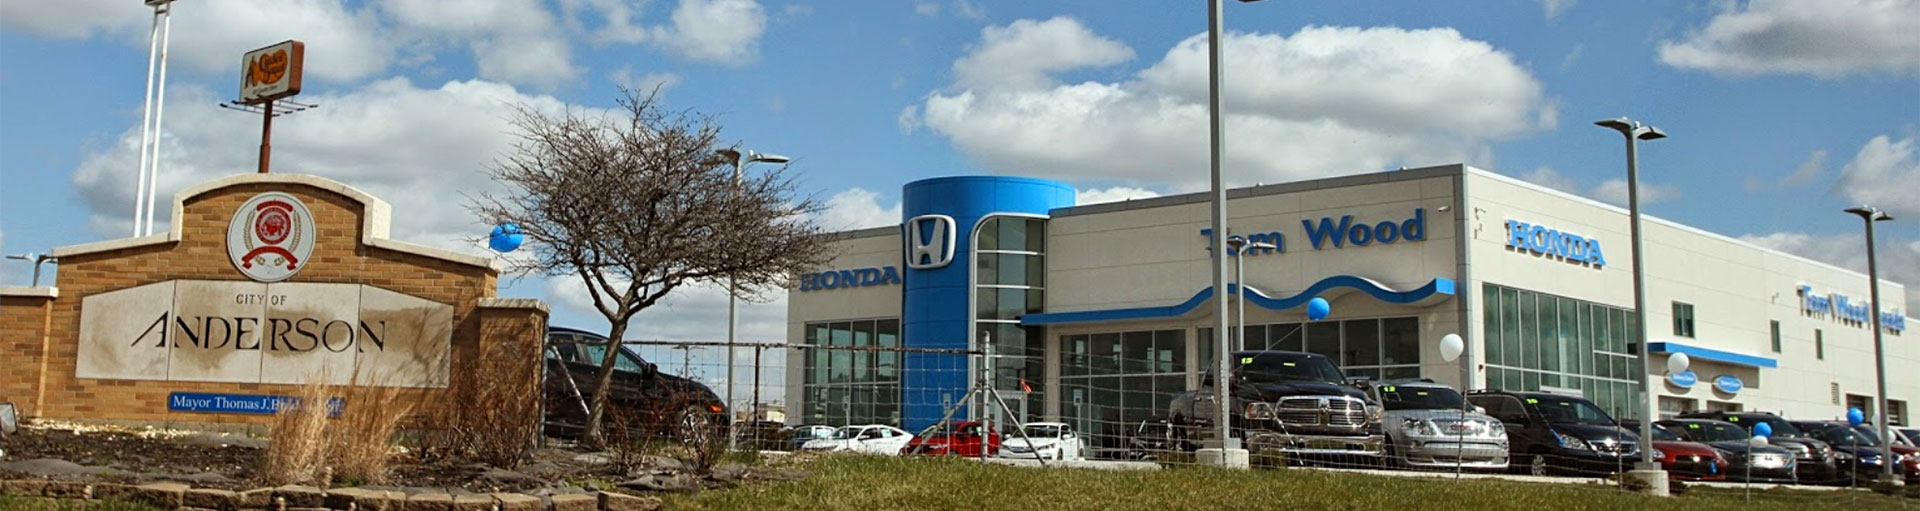 Tom Wood Honda Service Department